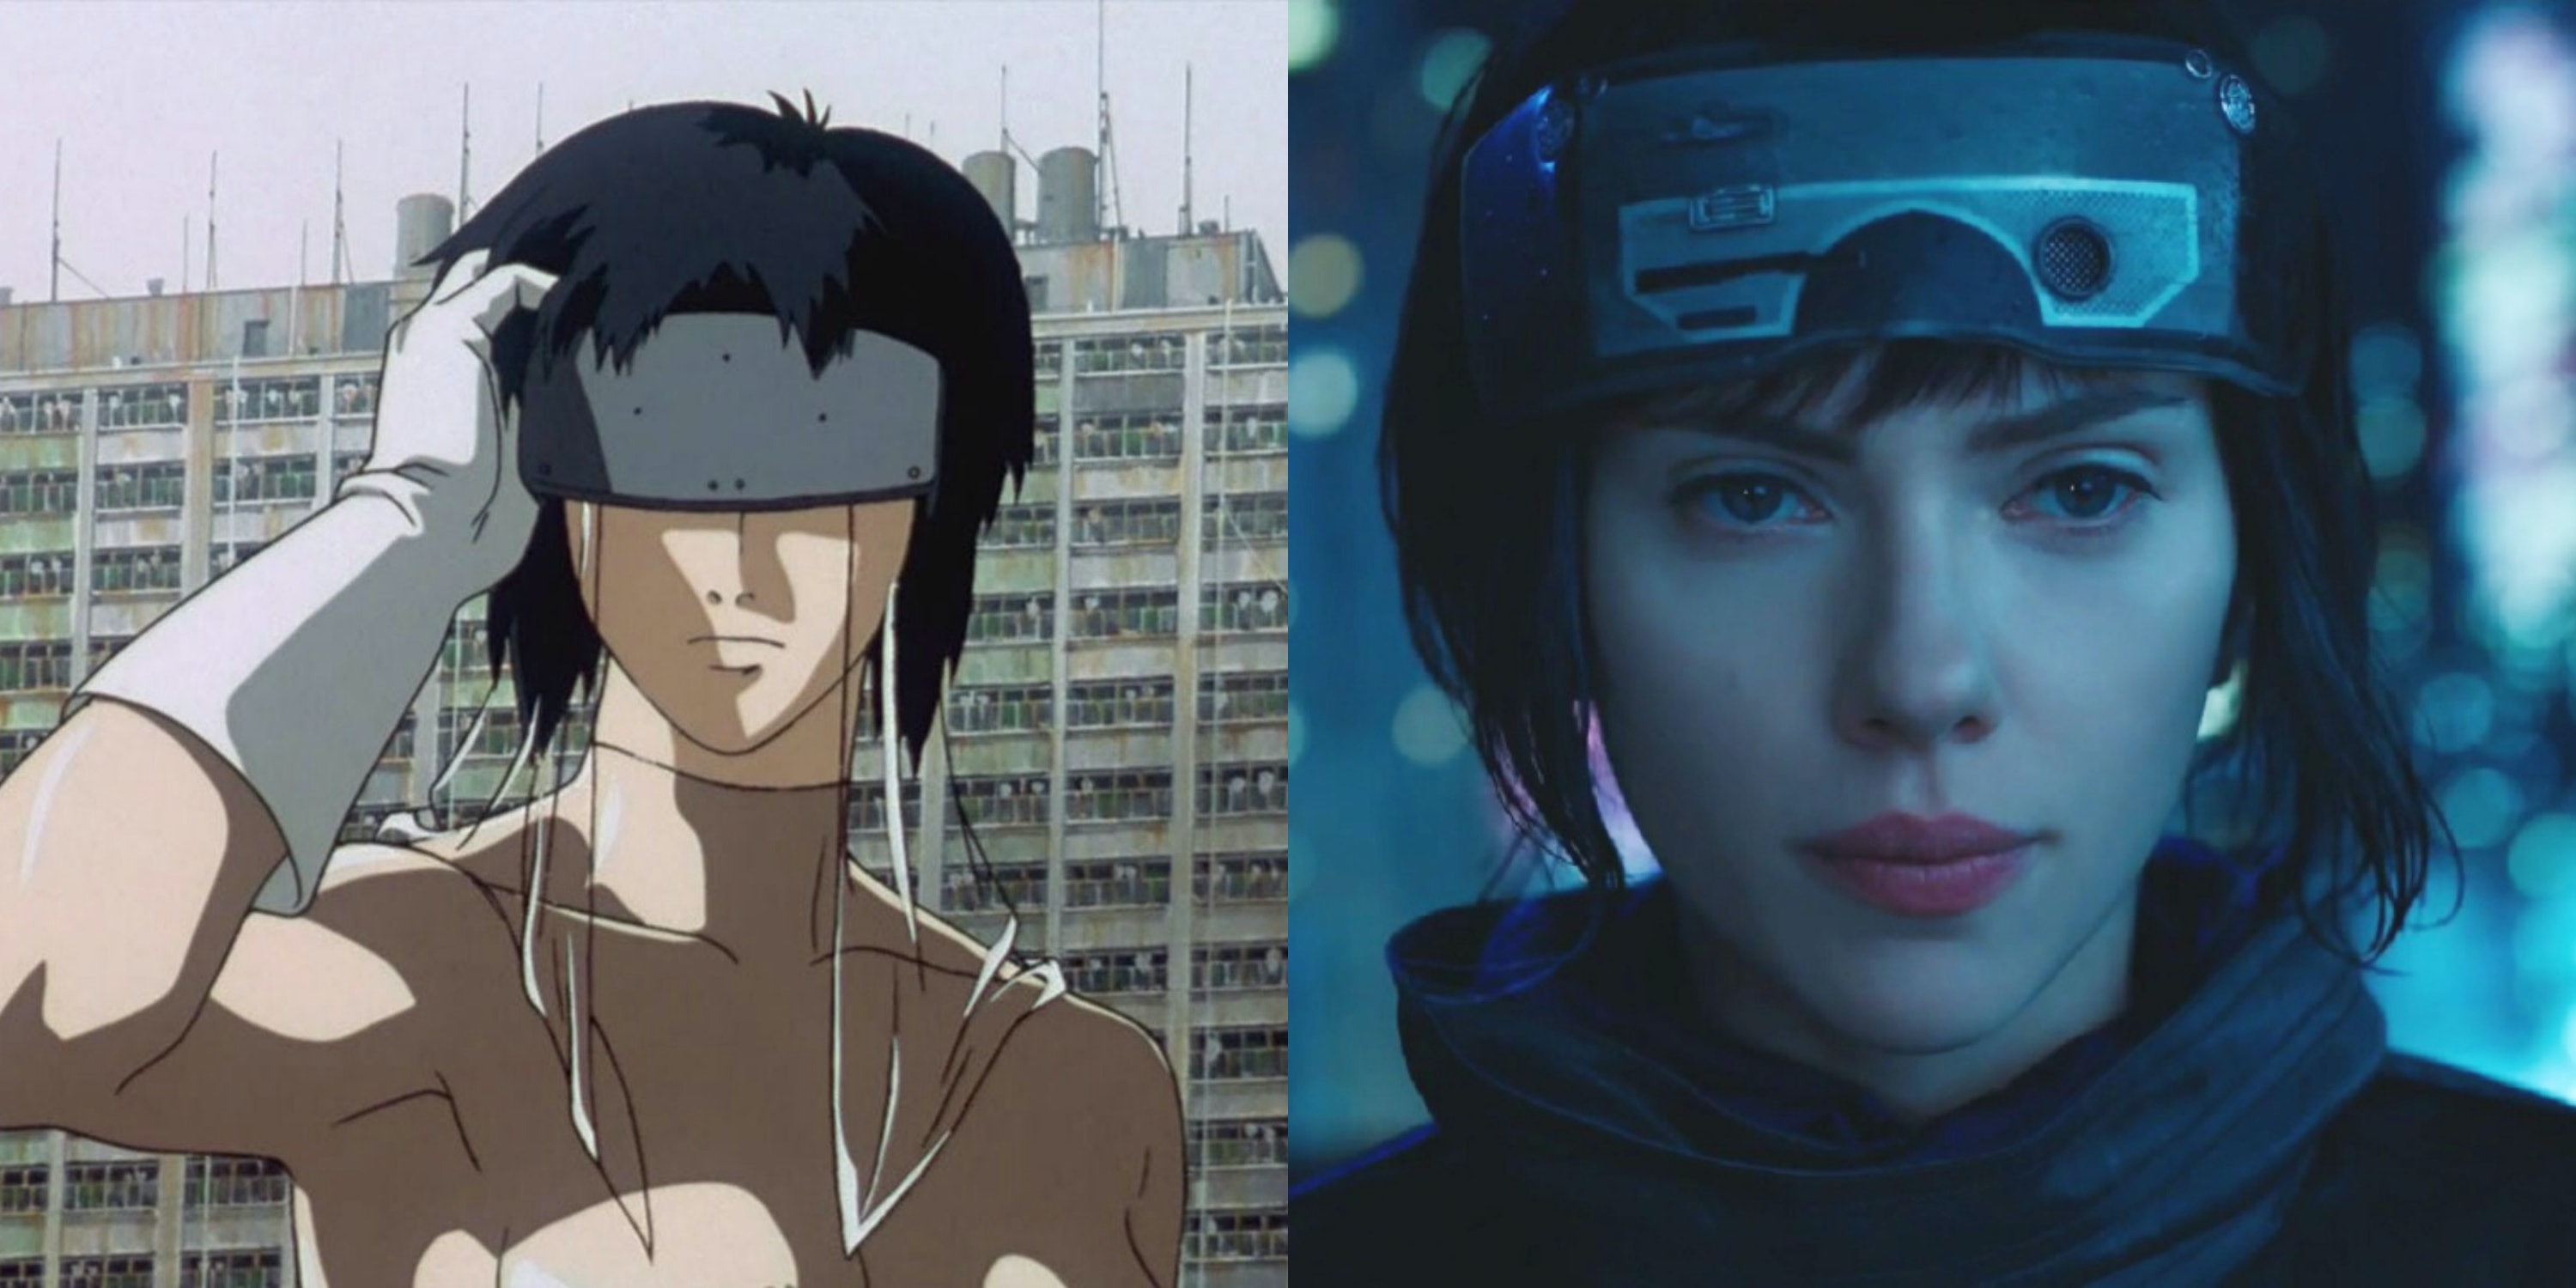 Original Japanese Actors to Dub ScarJo in 'Ghost in the Shell'